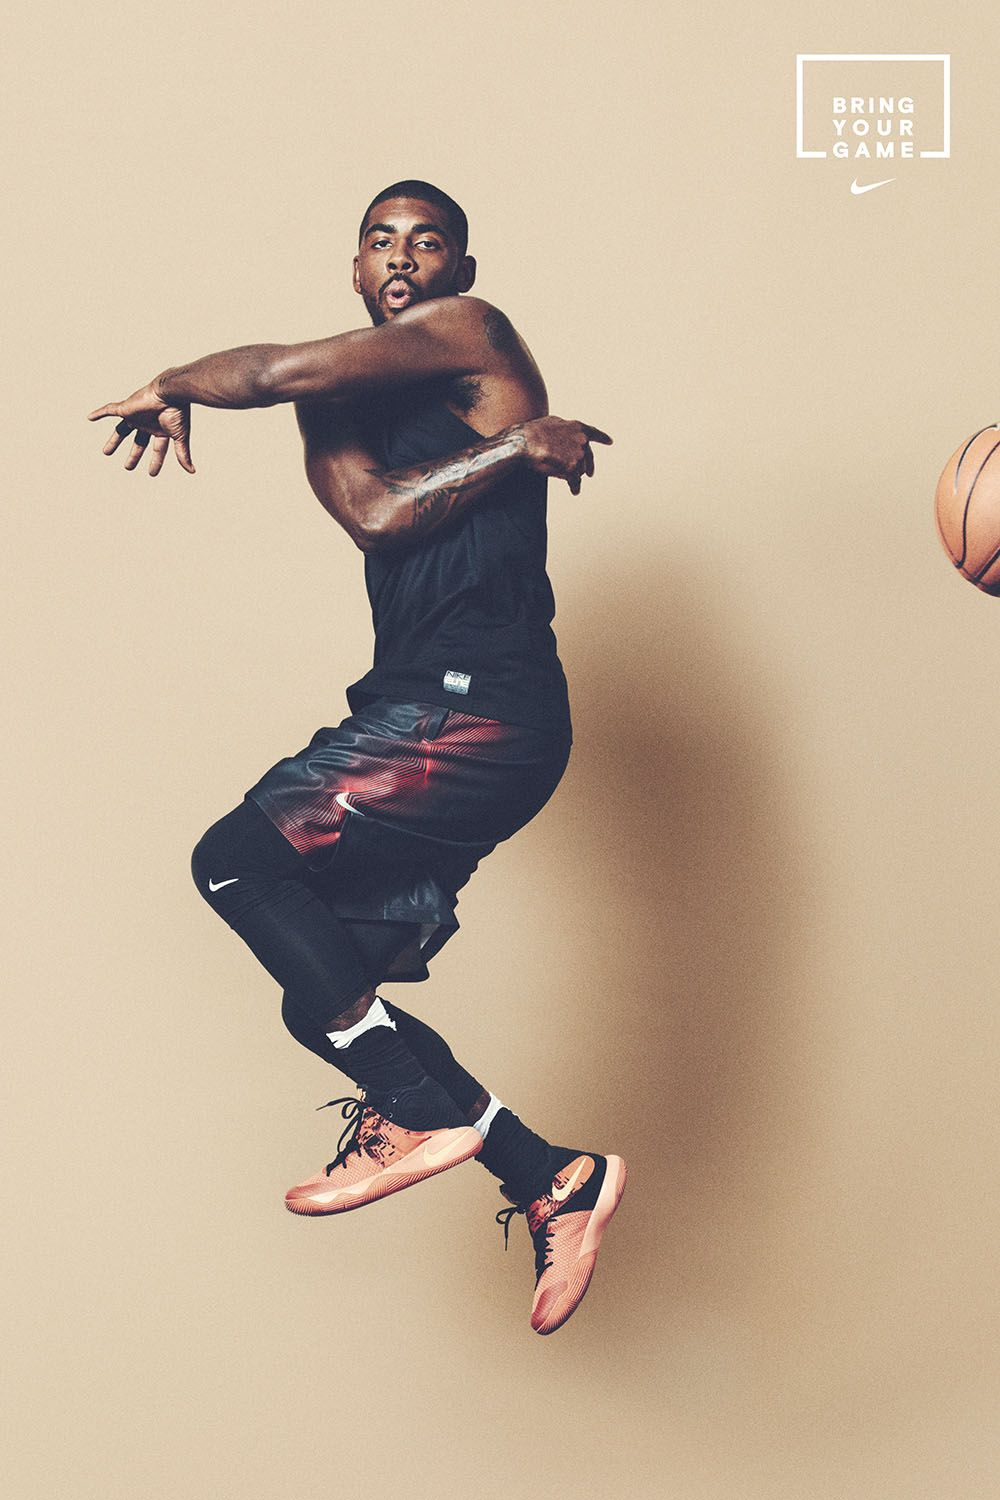 22f576586963 ... photography for advertising and editorial clients. Misha Taylor - NIKE  - Bring your Game - Artsphere